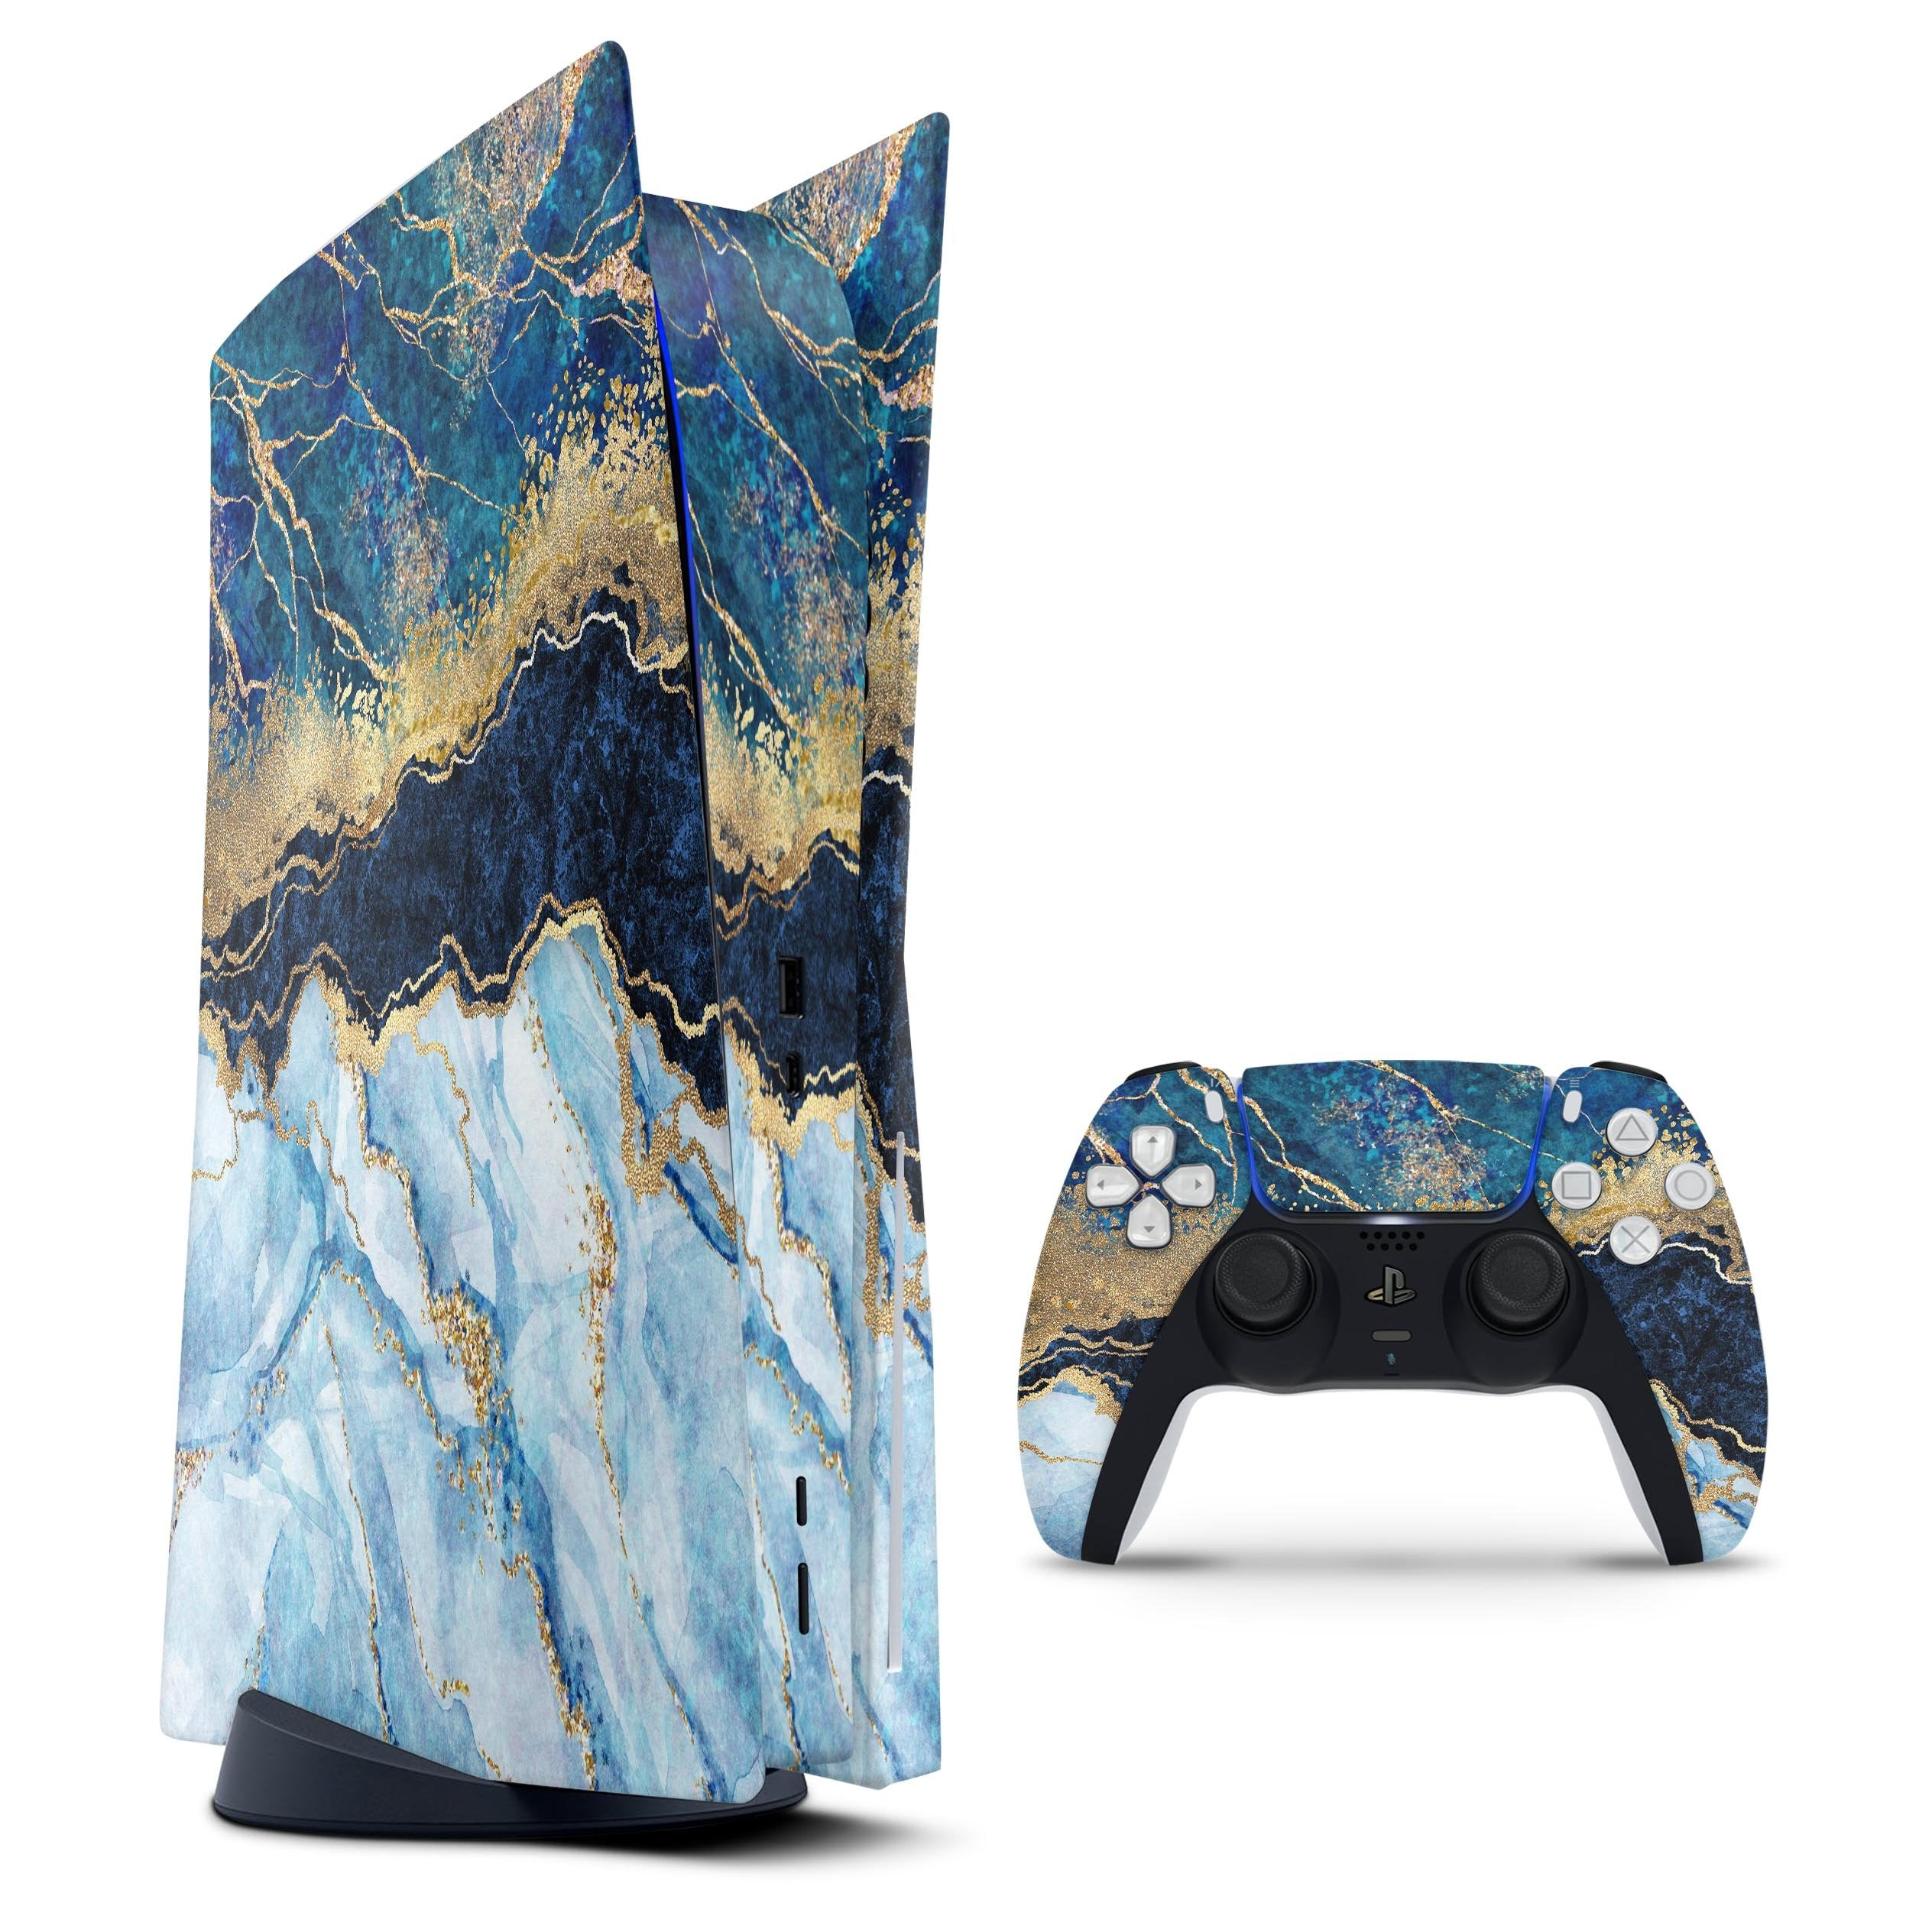 Foiled Marble Agate - Vinyl decal Bundle for PlayStation 5